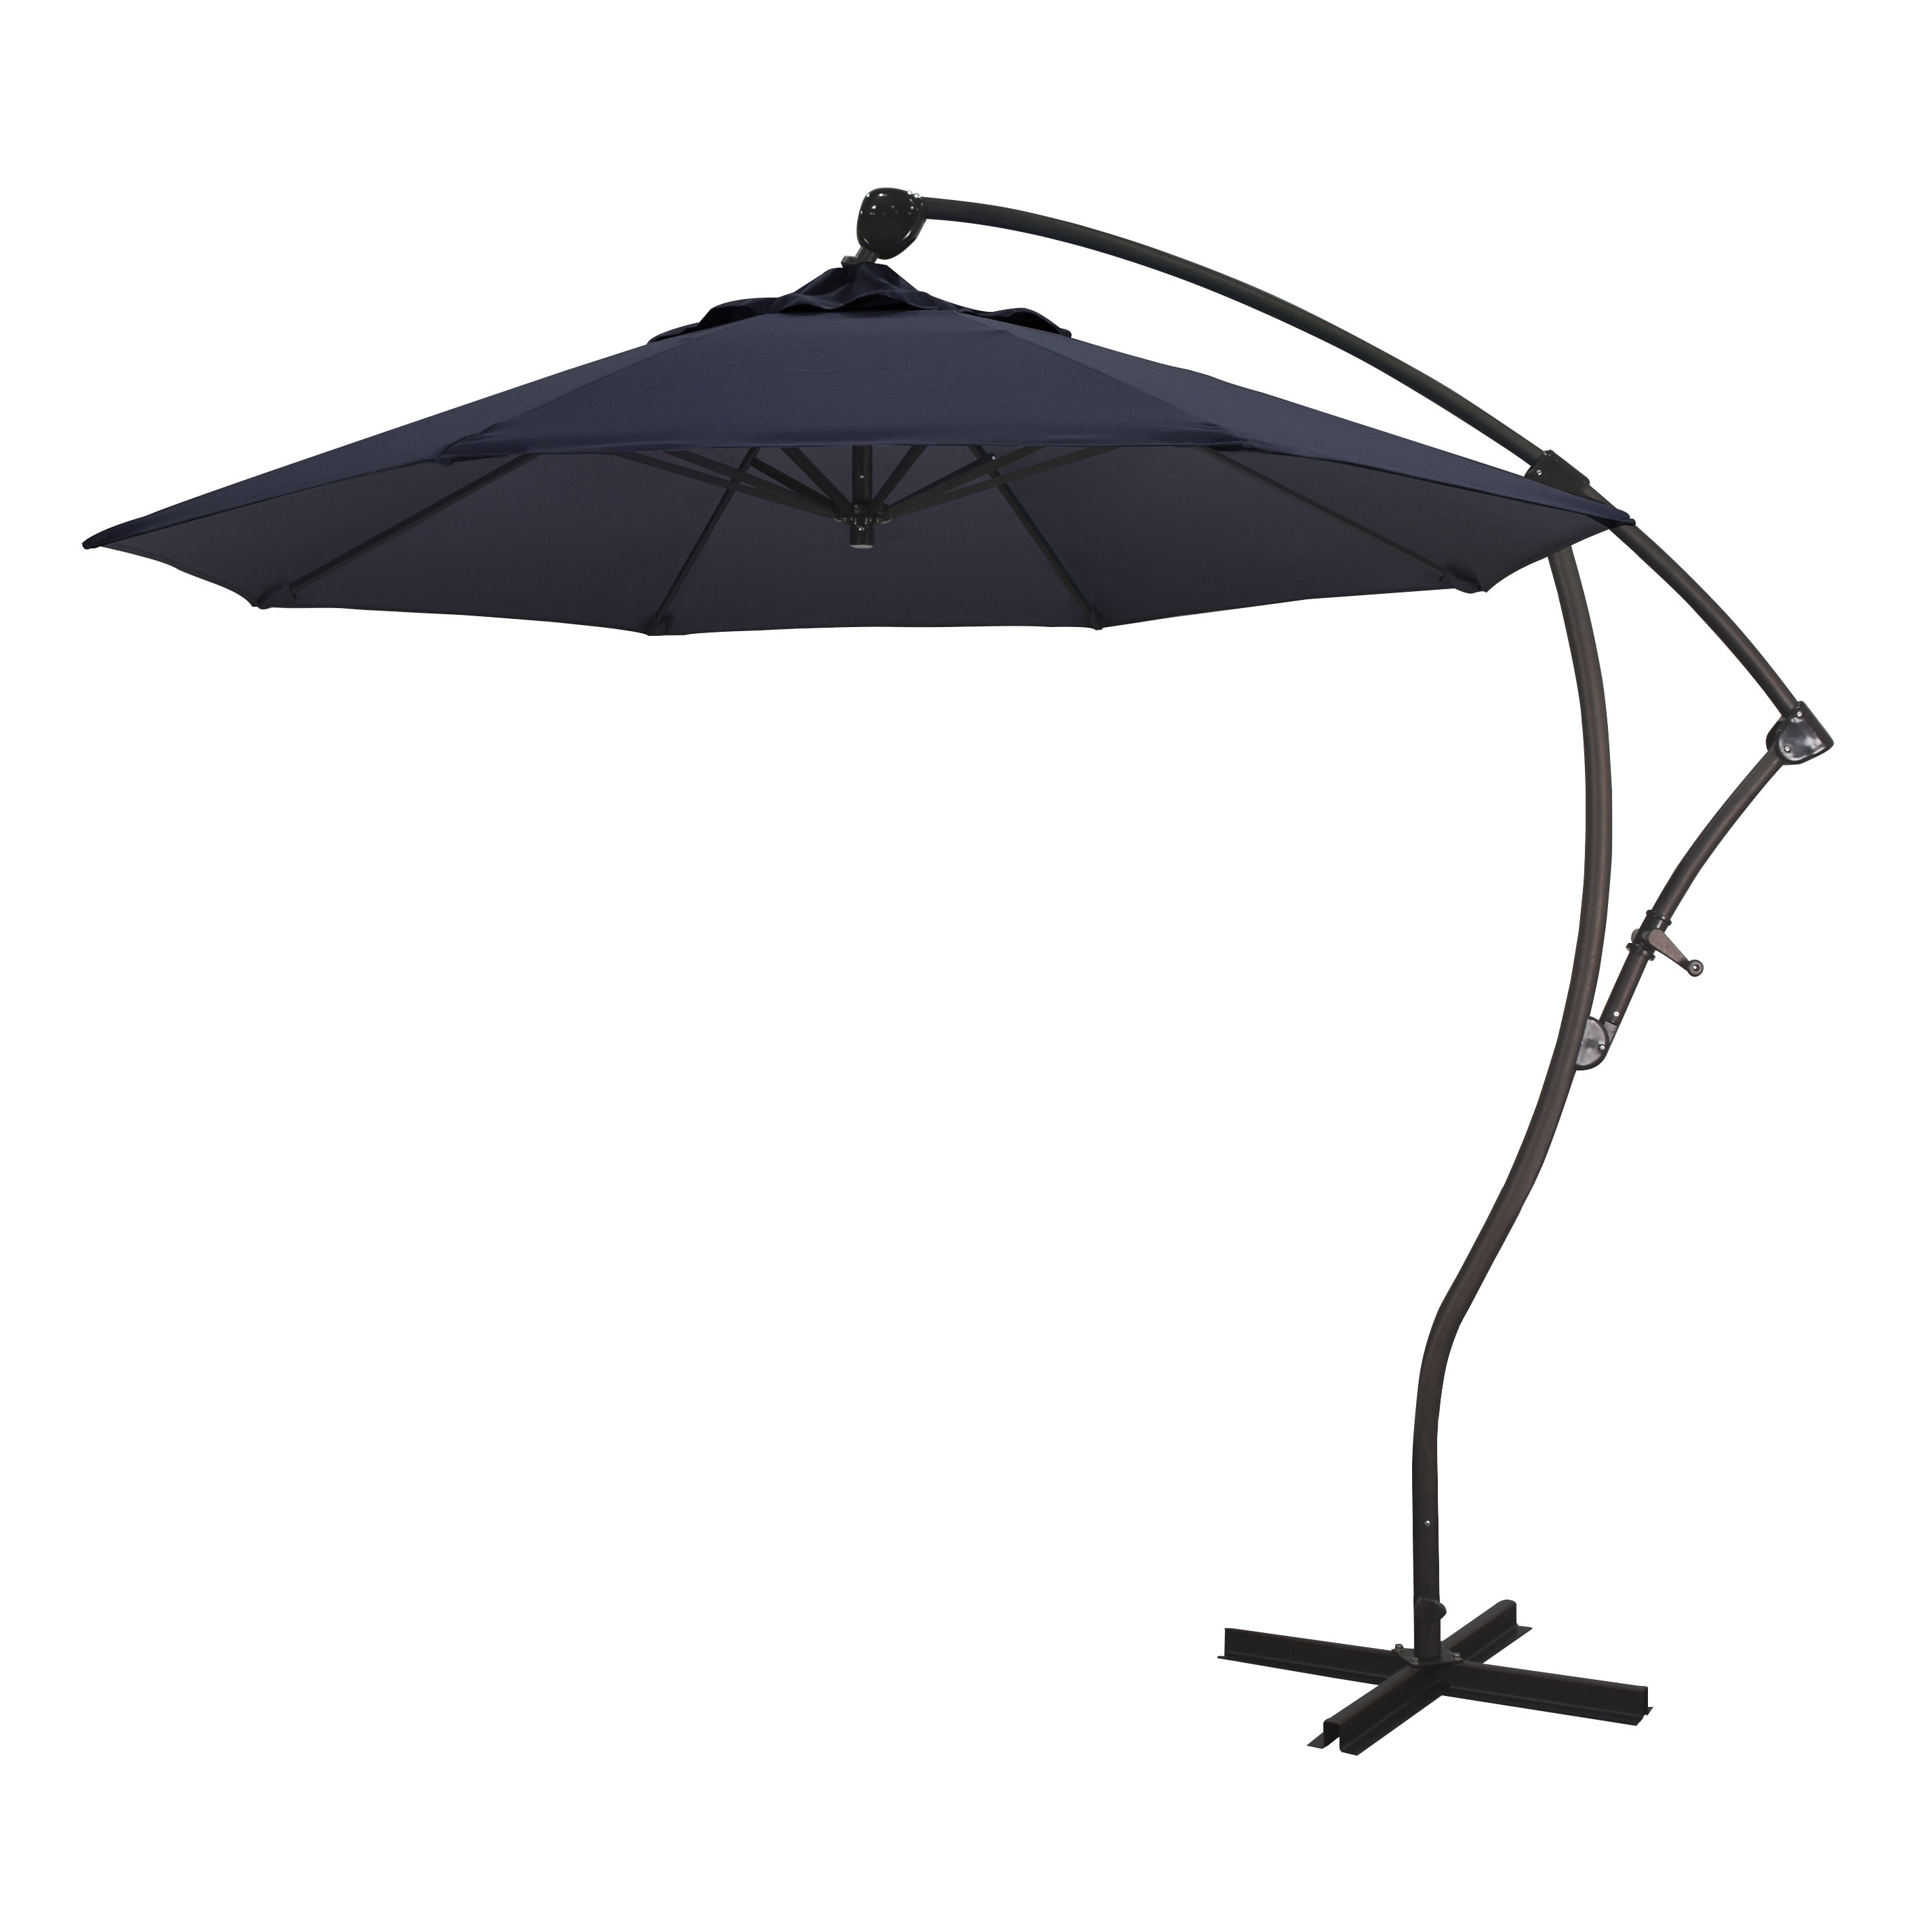 Capri 9' Cantilever Umbrella With Regard To Current Trotman Cantilever Umbrellas (View 8 of 20)